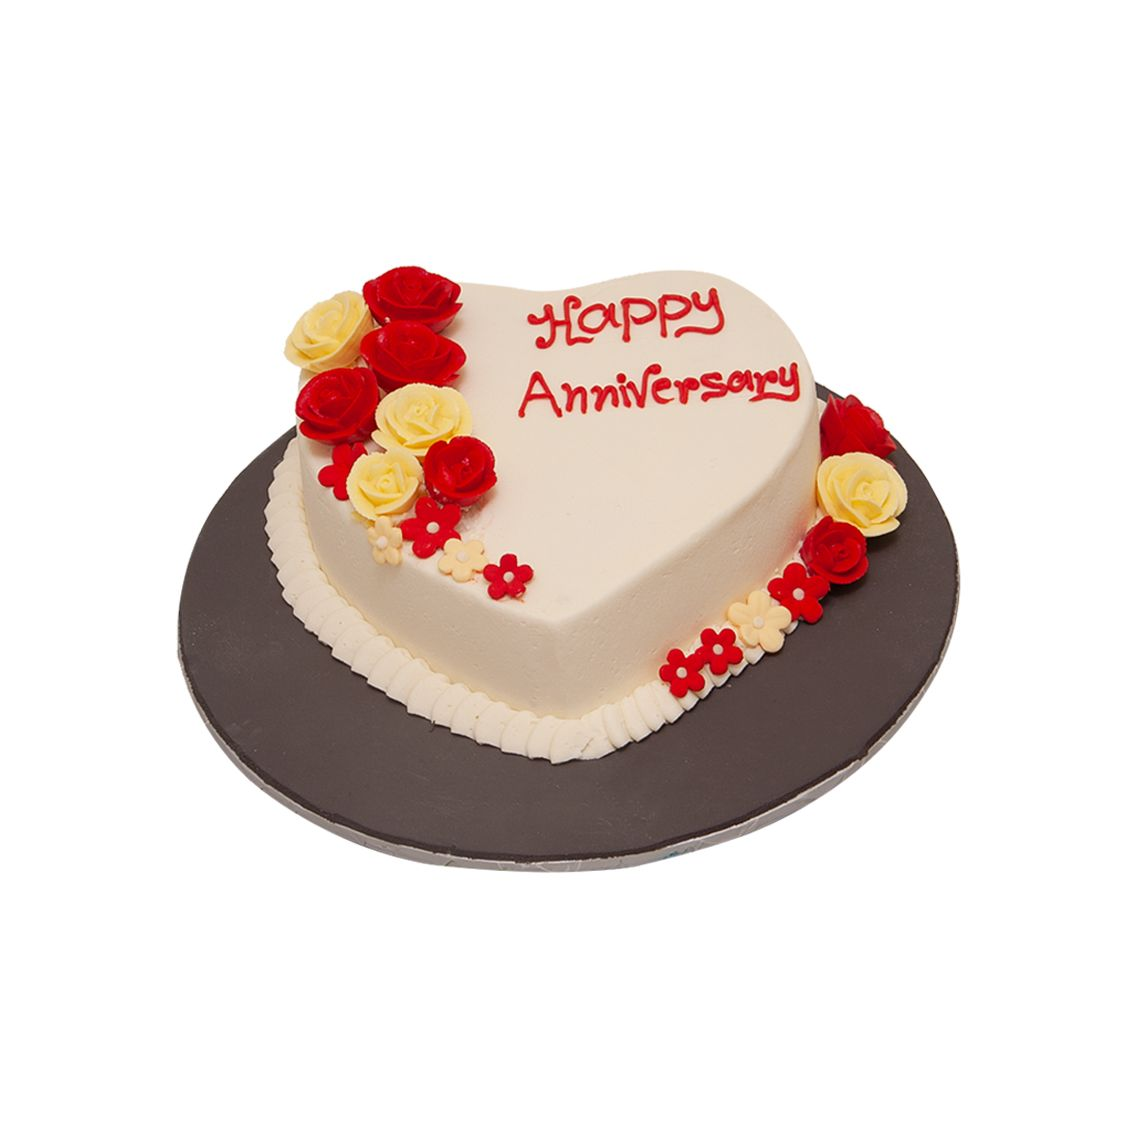 Kitchen Cuisine Default Category Heart Shape with Flowers Cake